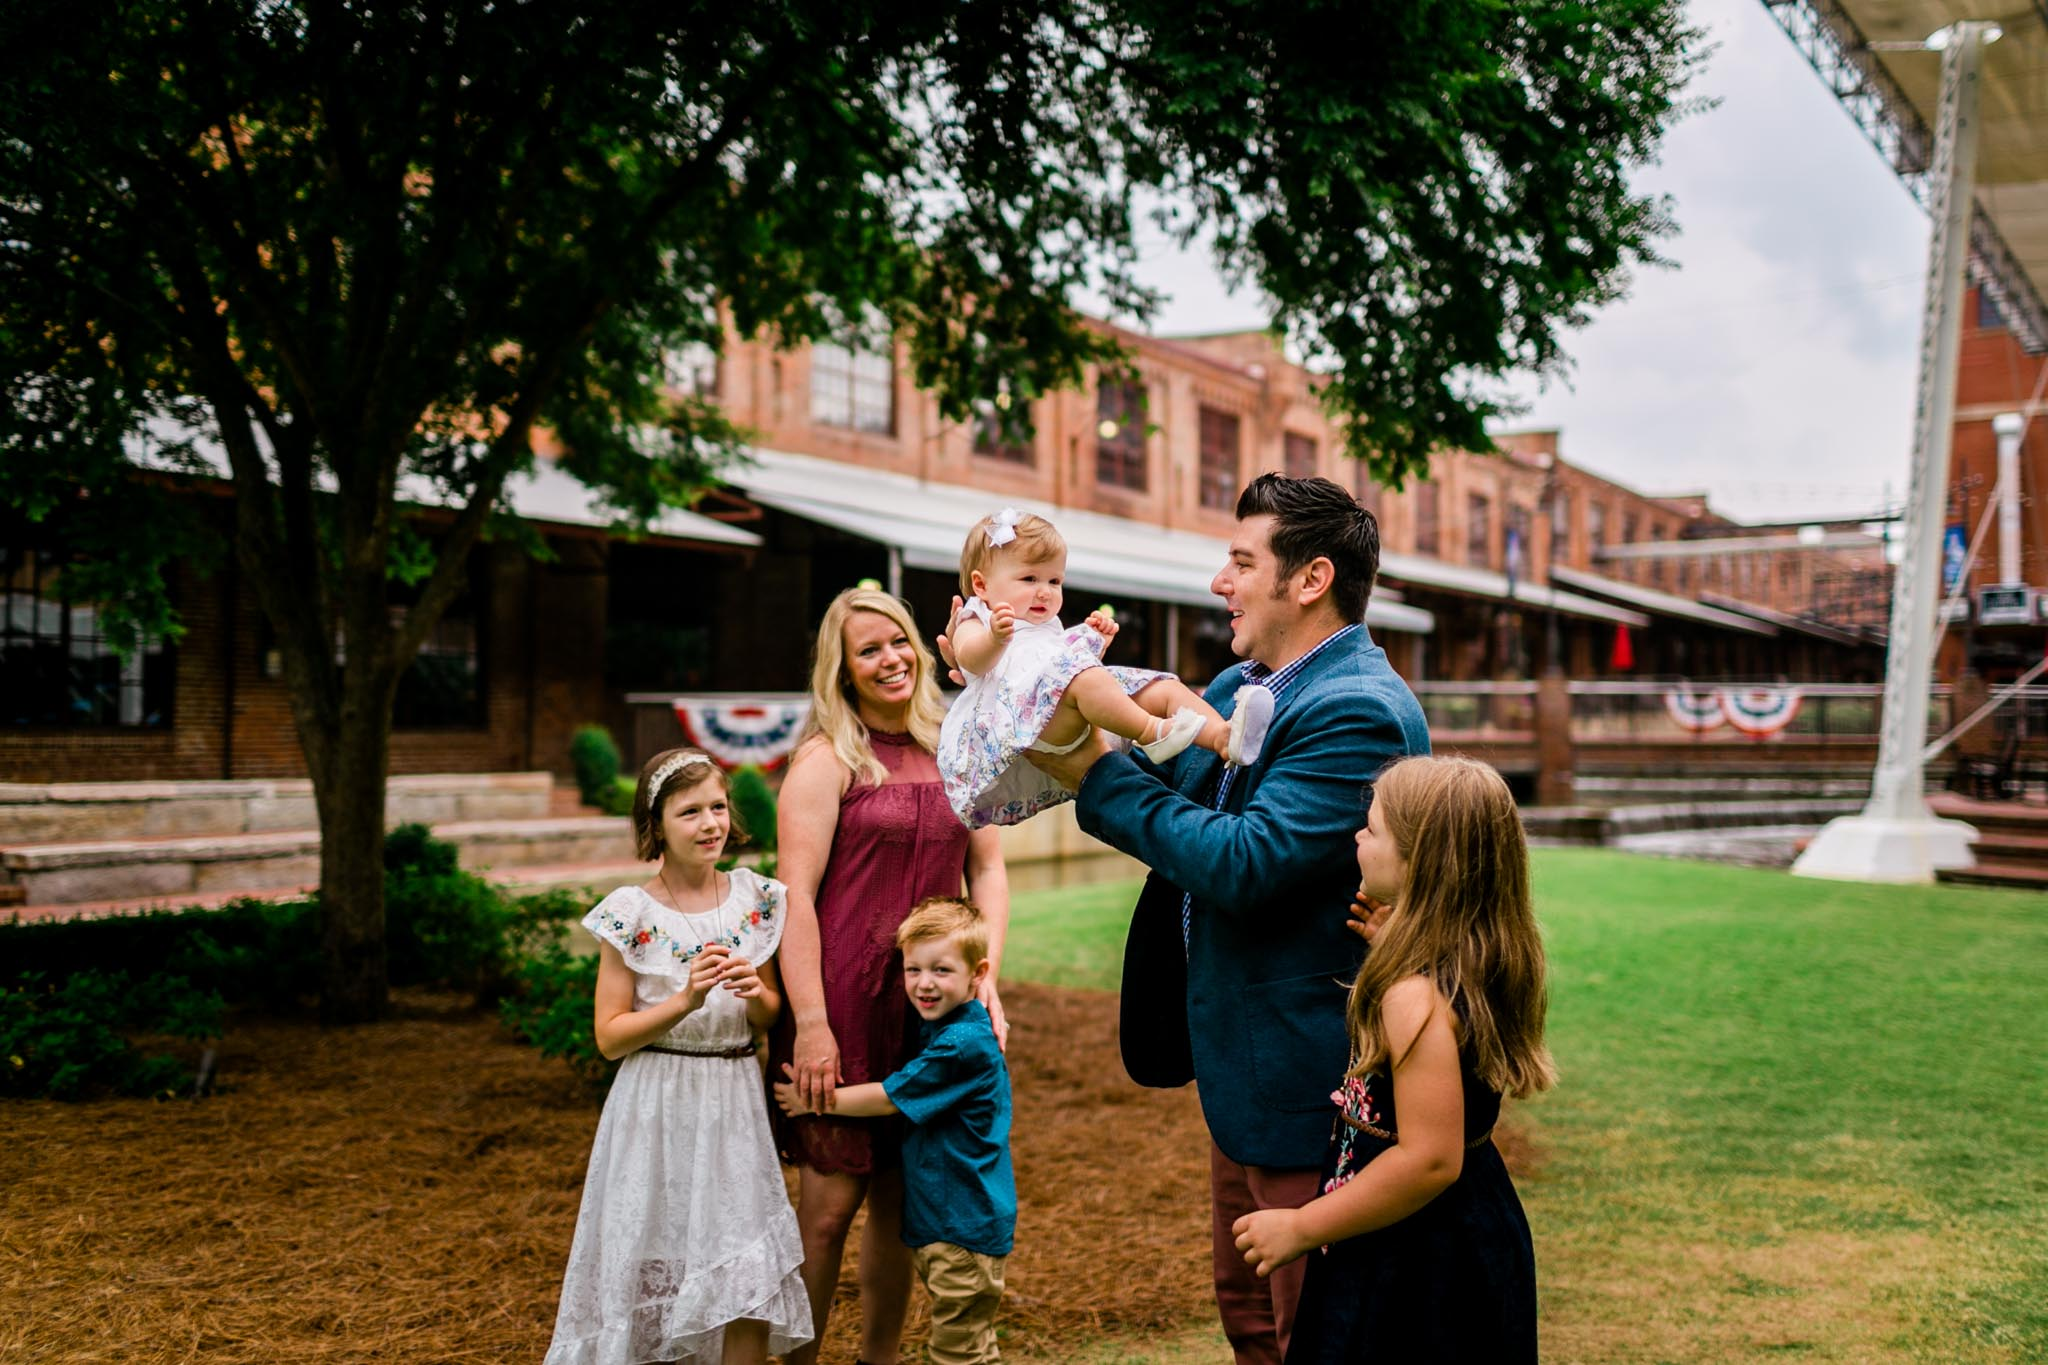 Durham Family Photographer | By G. Lin Photography | Candid lifestyle photo of dad tossing baby girl with family